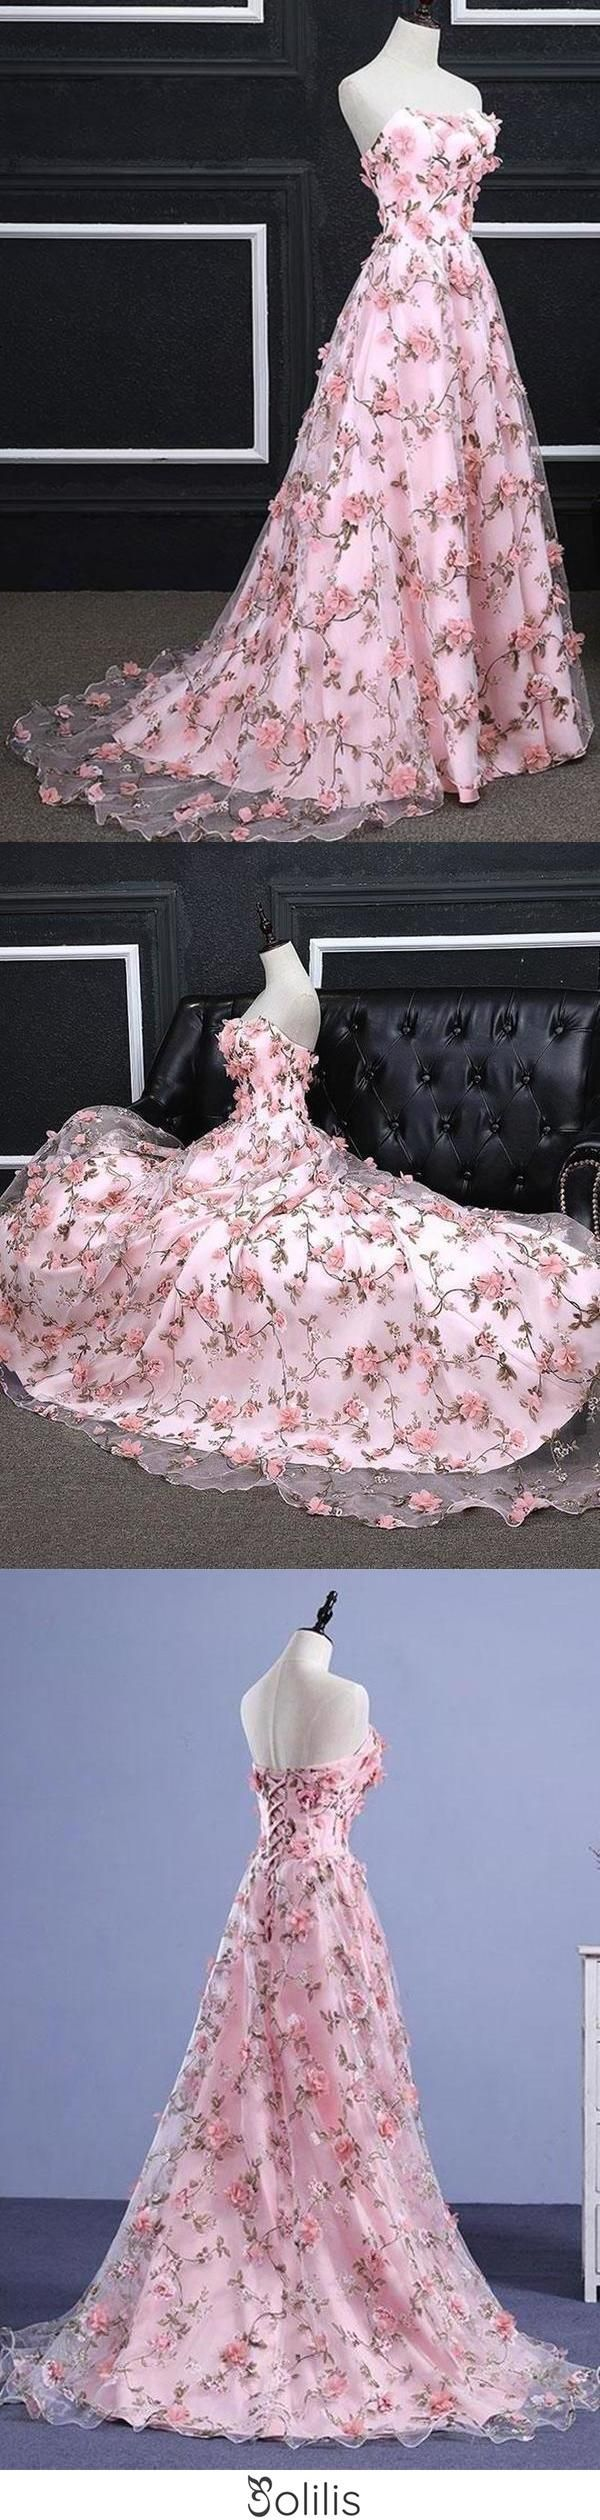 Photo of Pink A-line Sweetheart Strapless Sweep Train Floral Print Long Lace Prom Dresses with flowers JS524